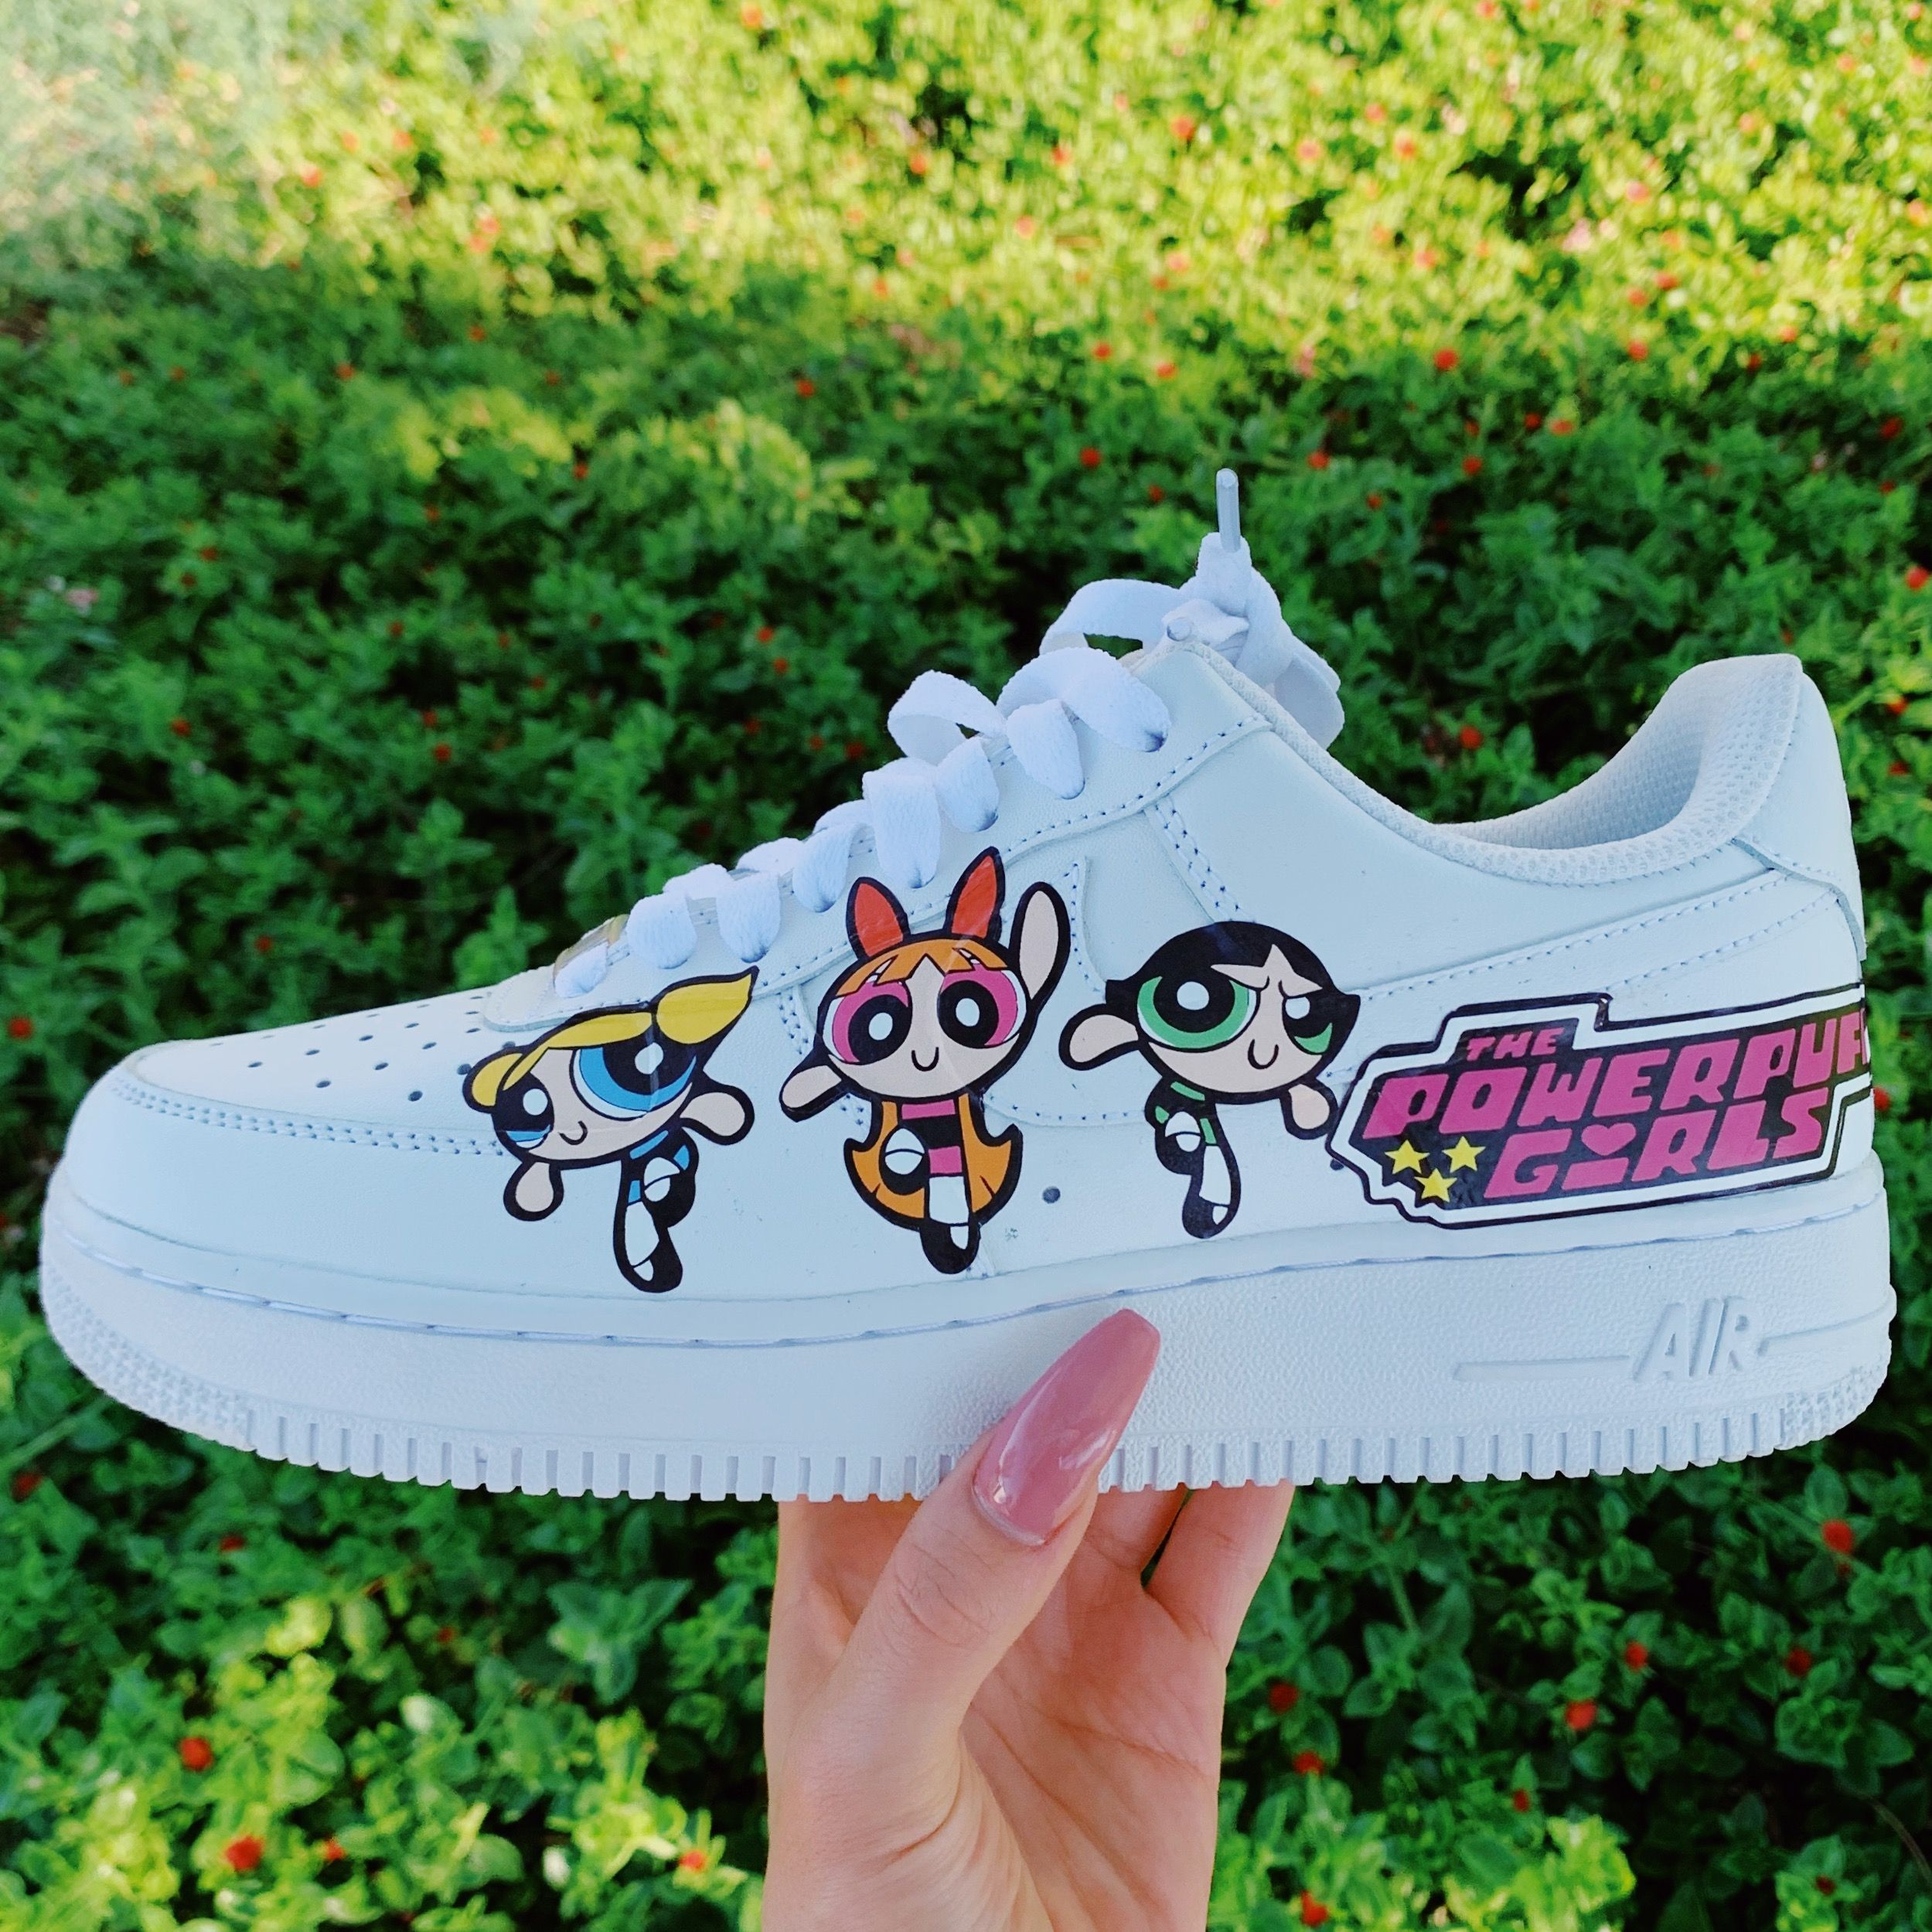 AirPuff 1's | Sneakers fashion, Nike air shoes, Hype shoes